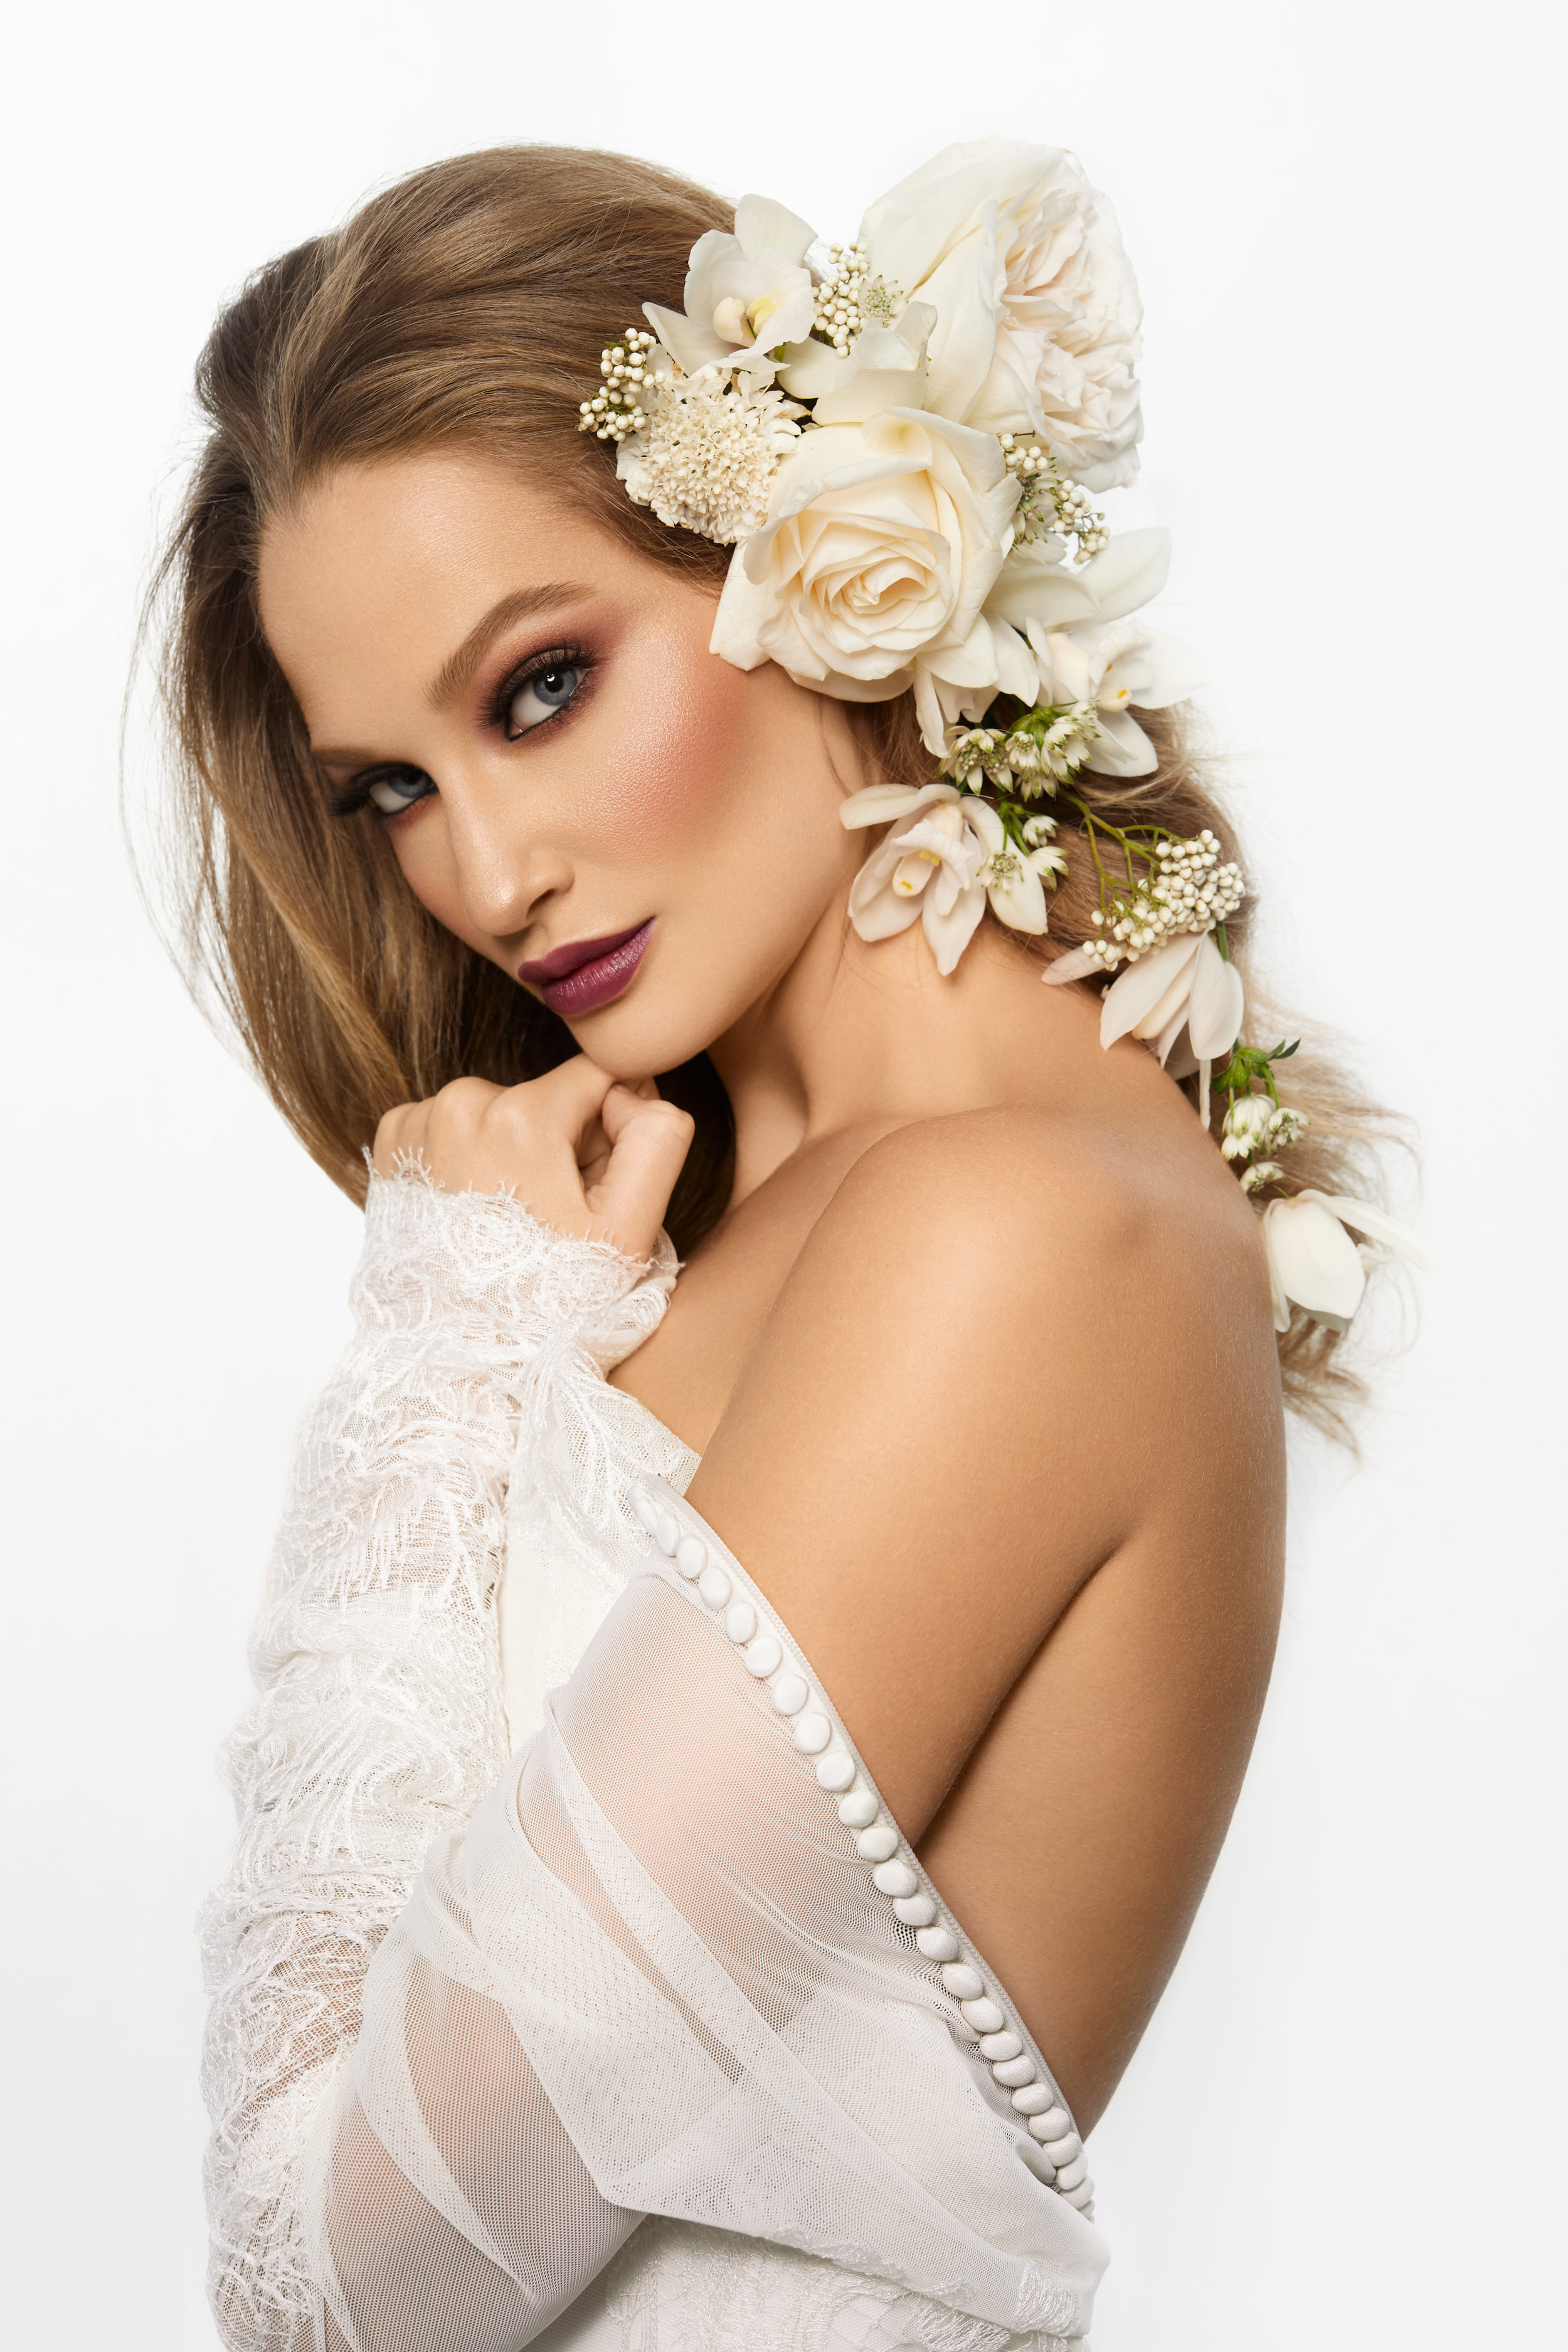 August In Bloom - Bride beauty - Purely Poised (The Bridal Affair)